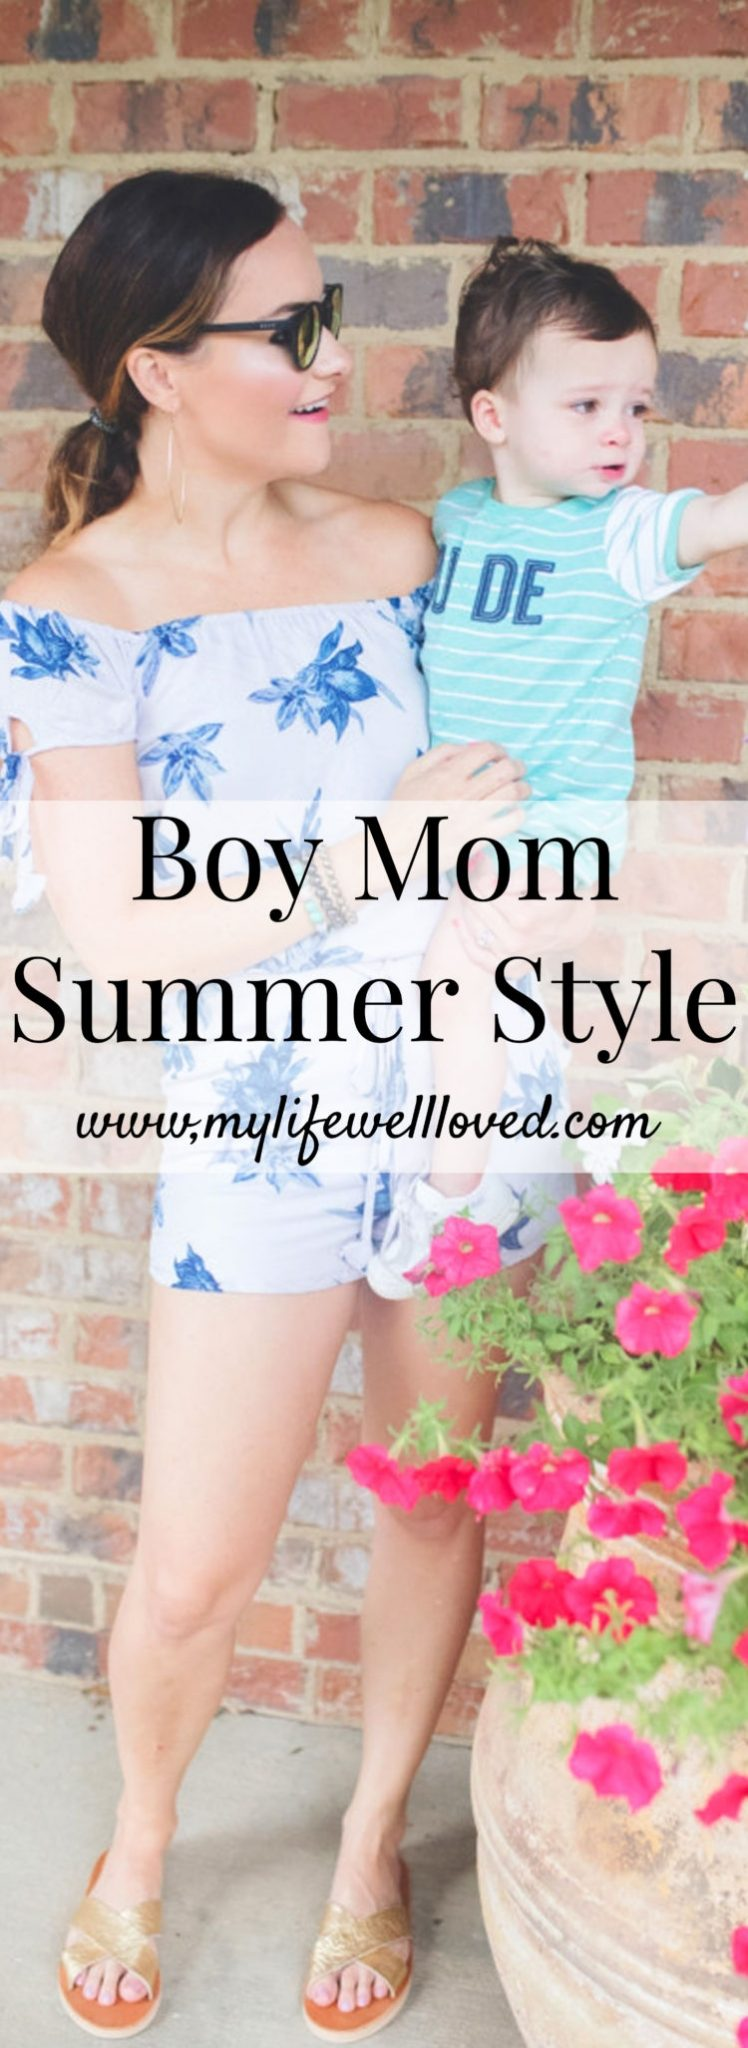 Boy Mom Style: Remedy Road Ethically Made Items Styled by Heather Brown of MyLifeWellLoved.com // Mom Fashion // Pinterest Graphic